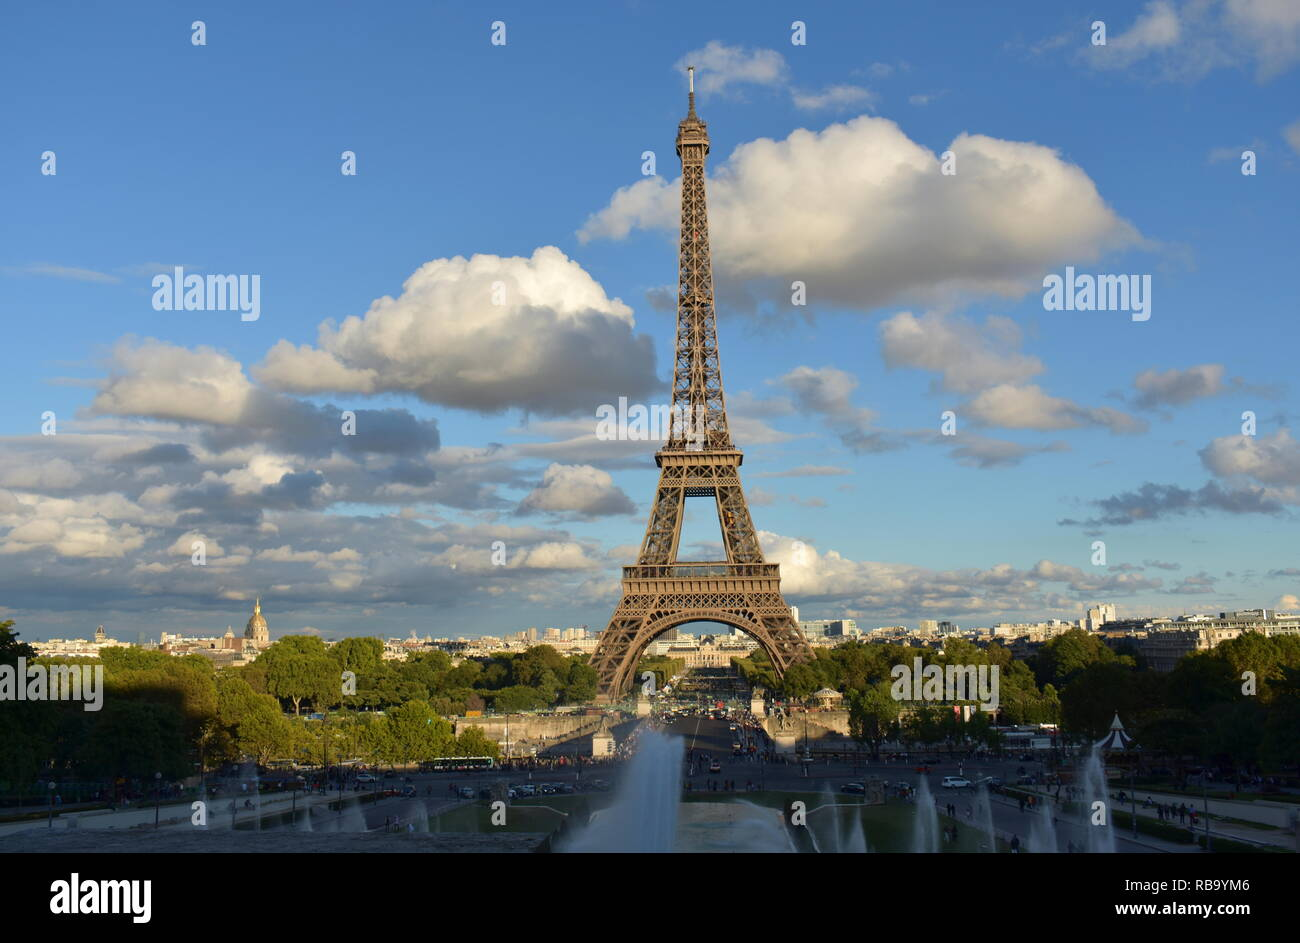 Eiffel Tower from Trocadero. Paris, France. Blue sky with clouds, sunset. - Stock Image